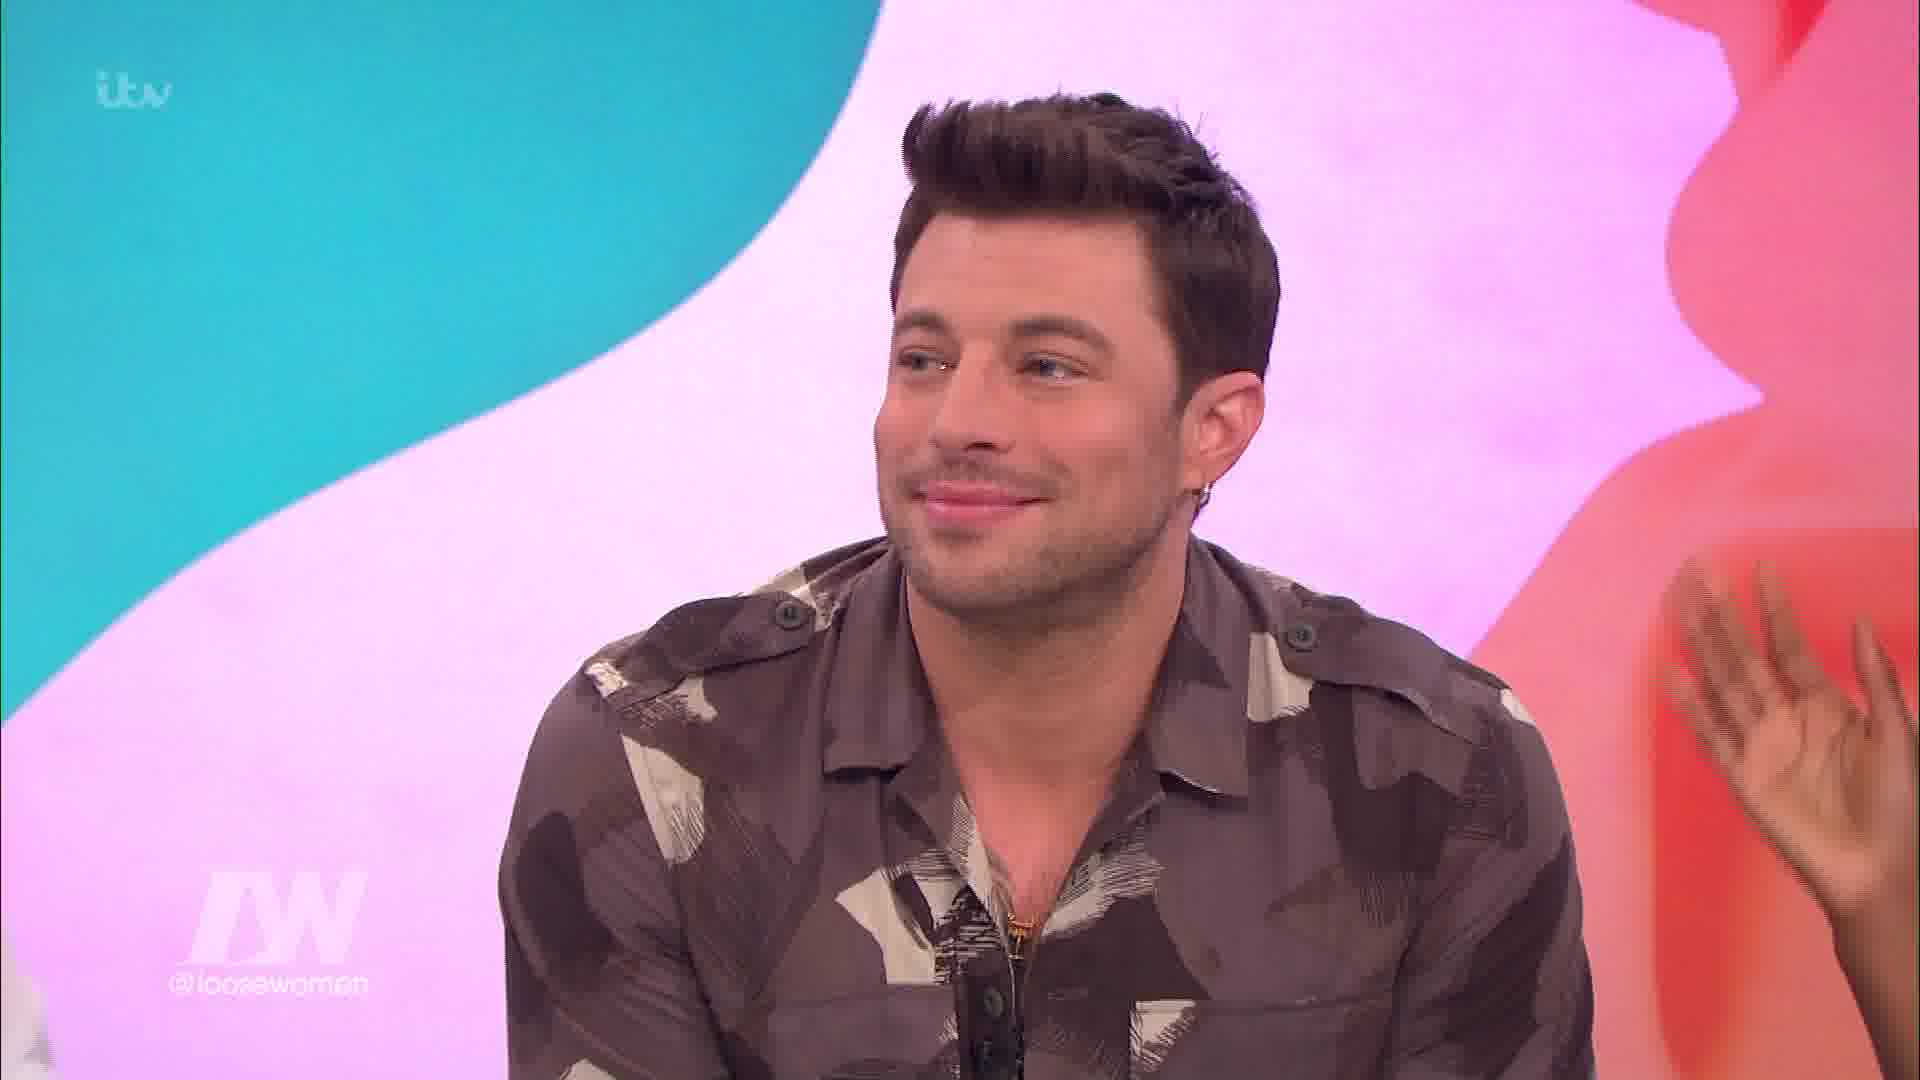 Duncan James forced to use stunt double in first Hollyoaks scenes after undergoing emergency back surgery